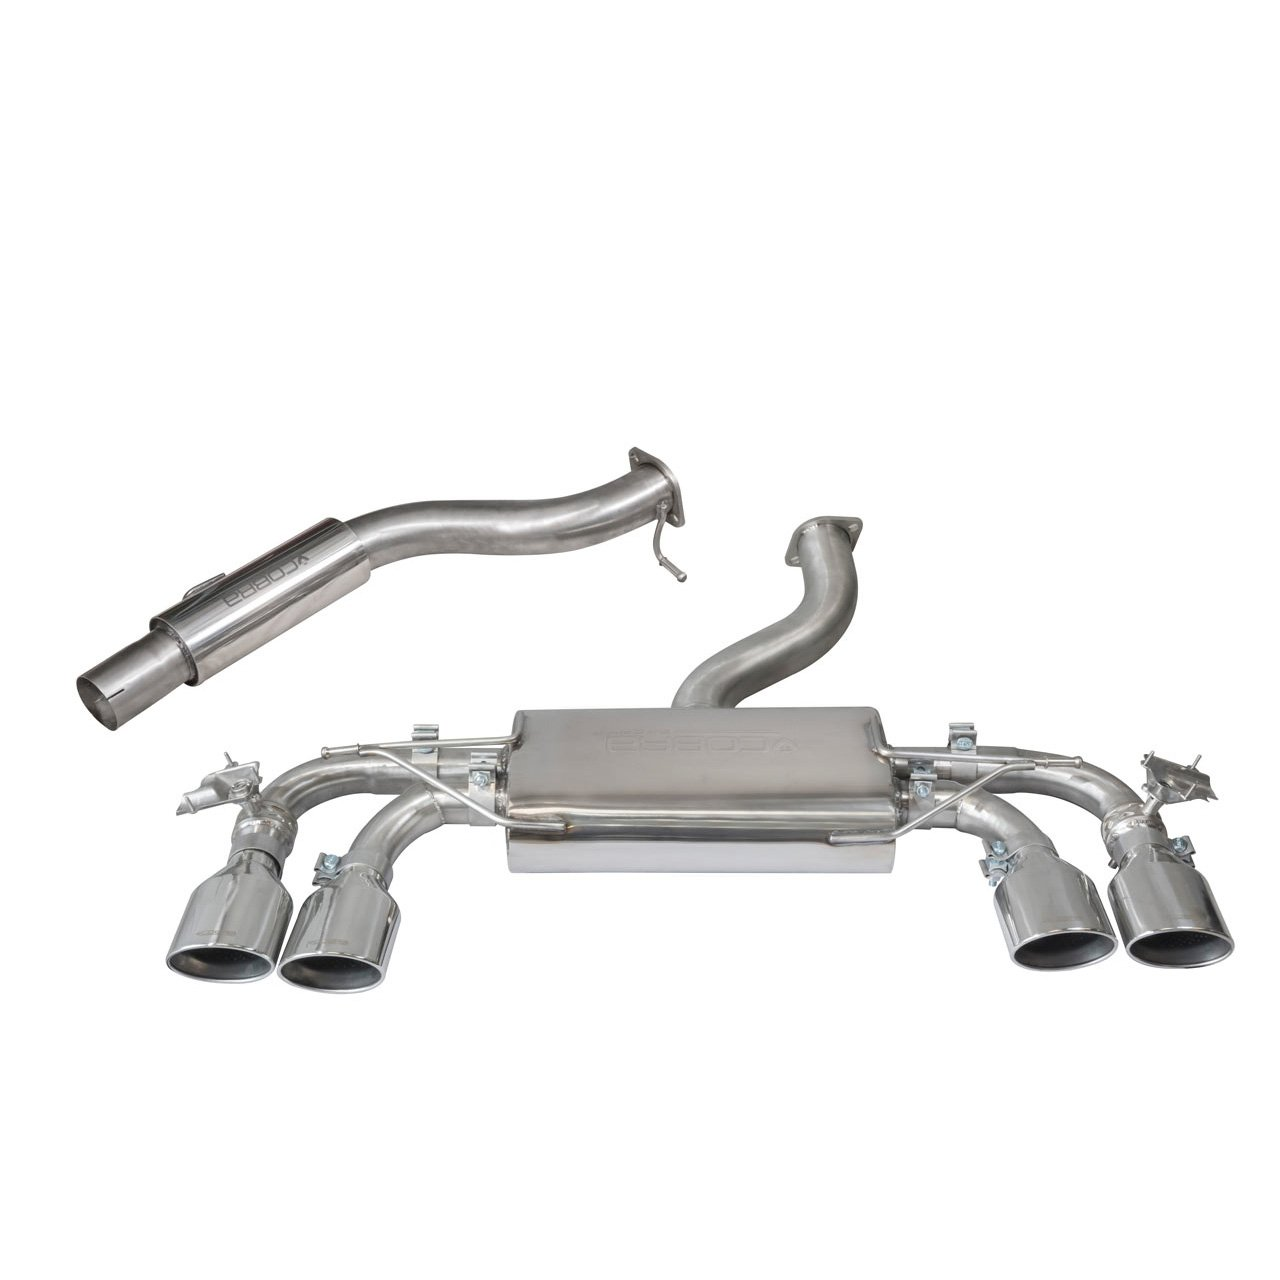 VW Golf R (Mk7.5) 2.0 TSI (5G) (18>) Cat Back Performance Exhaust